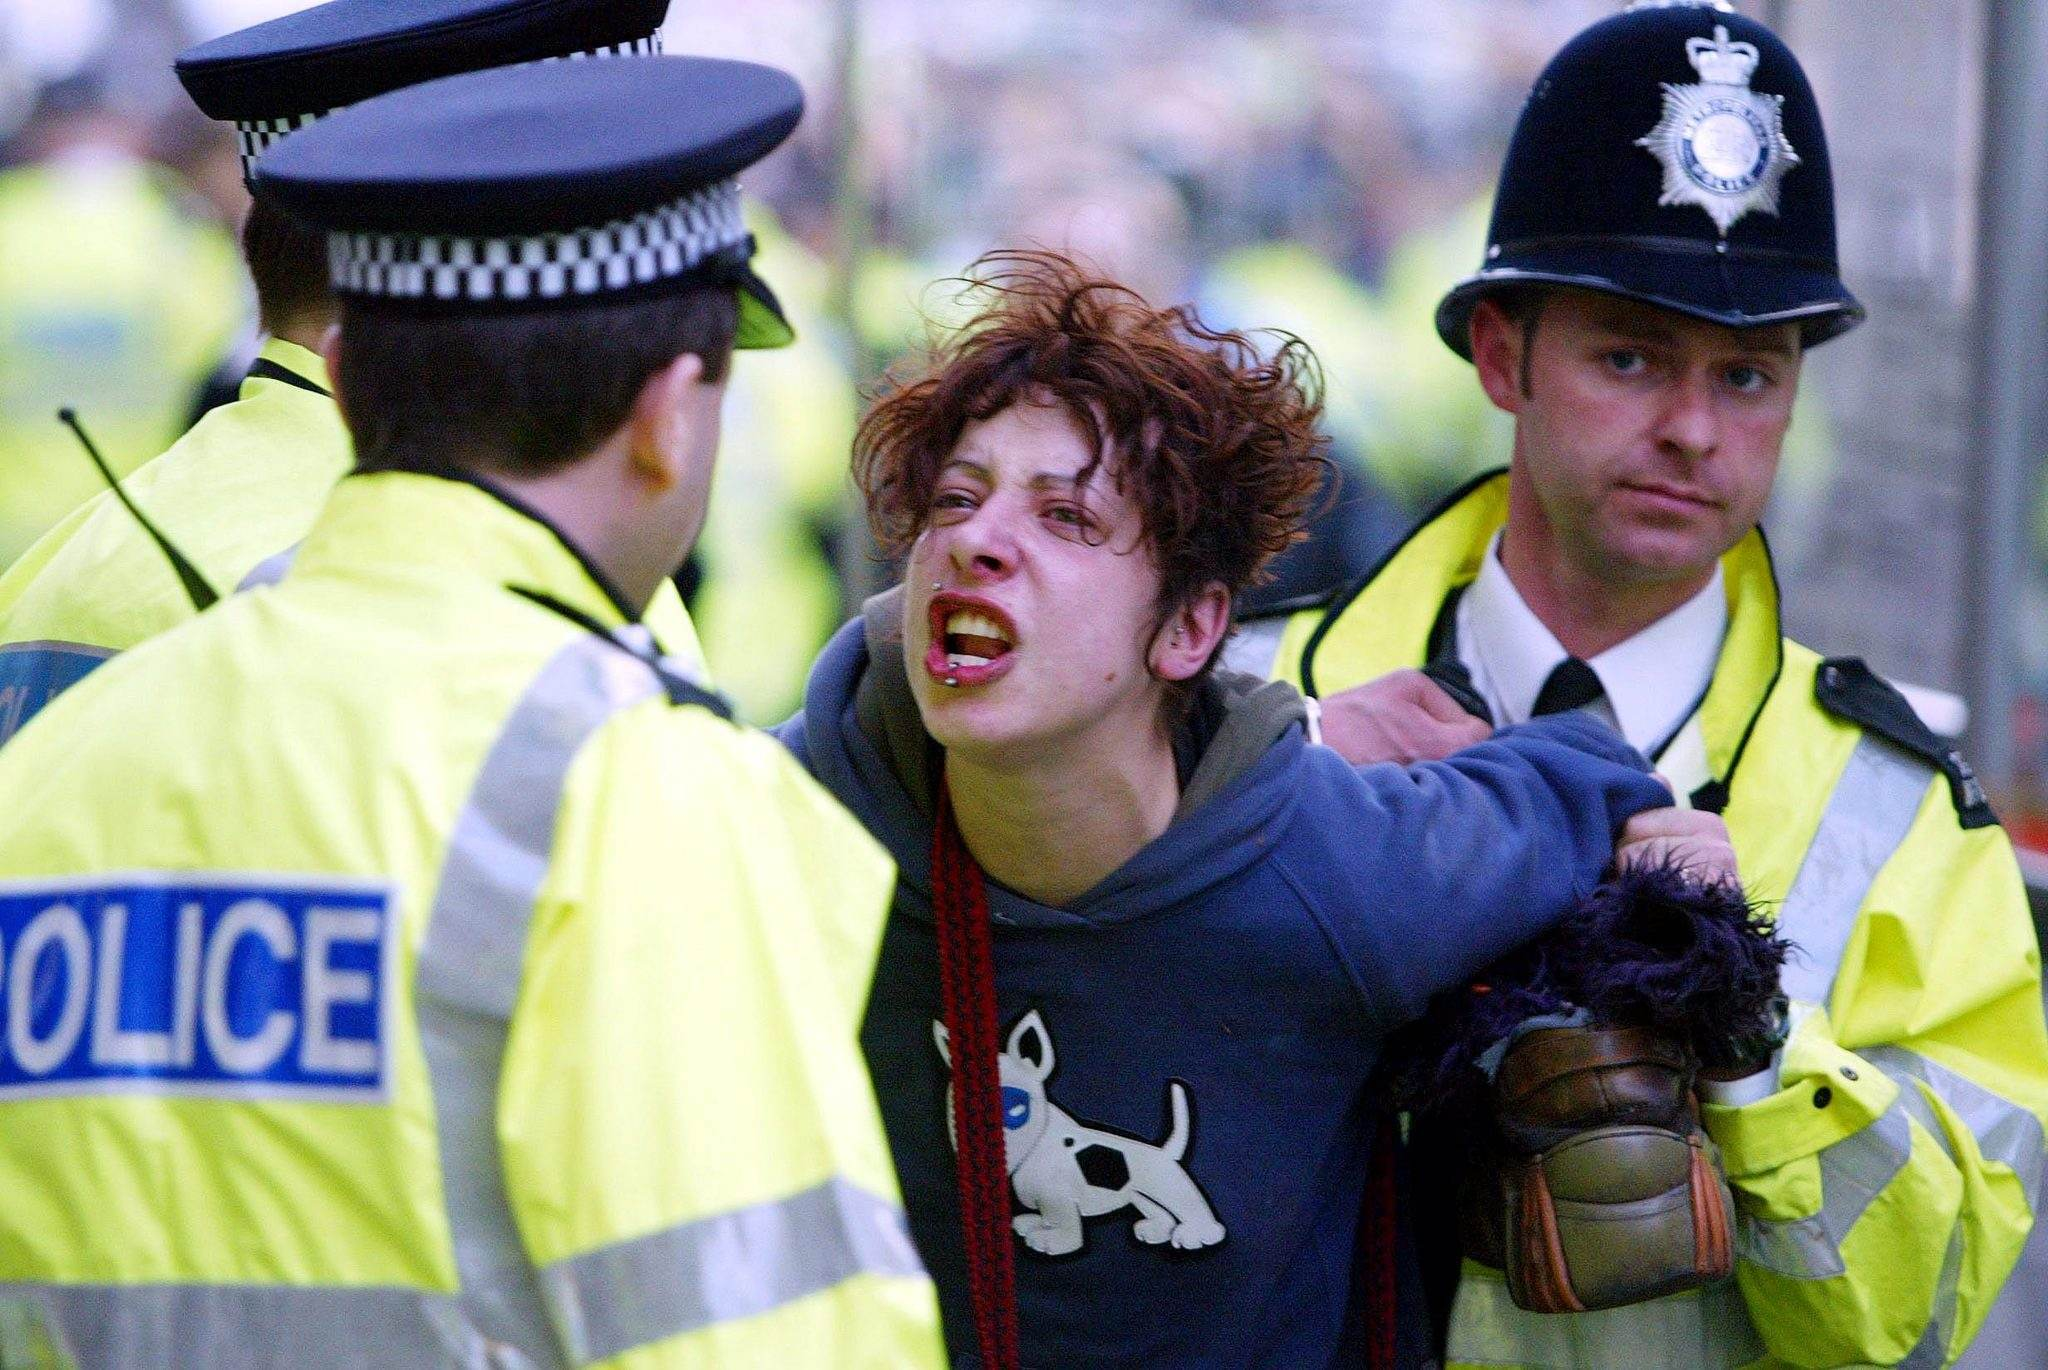 woman is lead away by Police in London's Trafalgar Square, during the annual May Day protests 01/05/2003